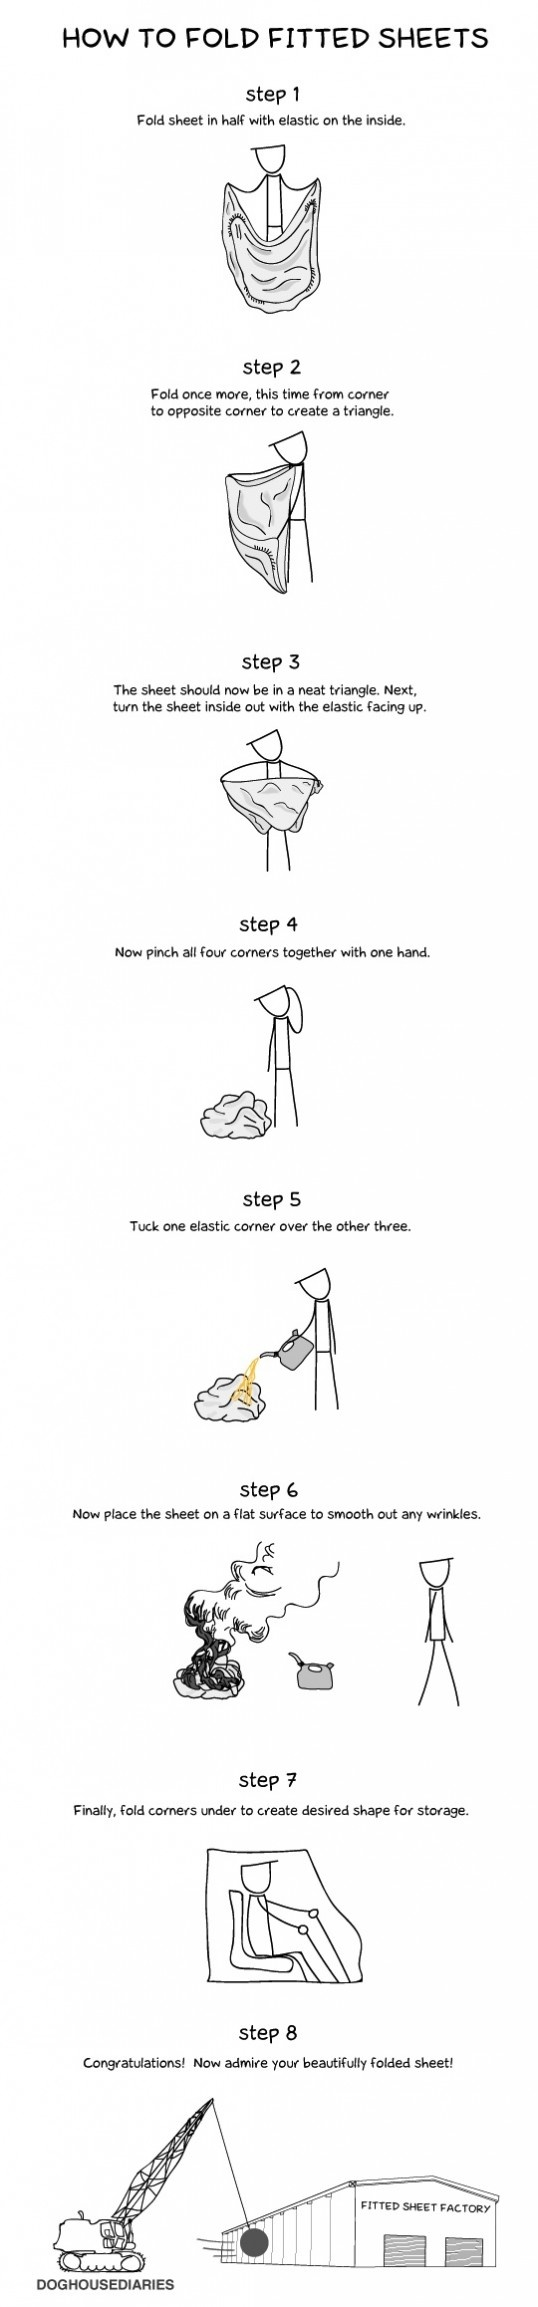 How to fold fitted sheets..